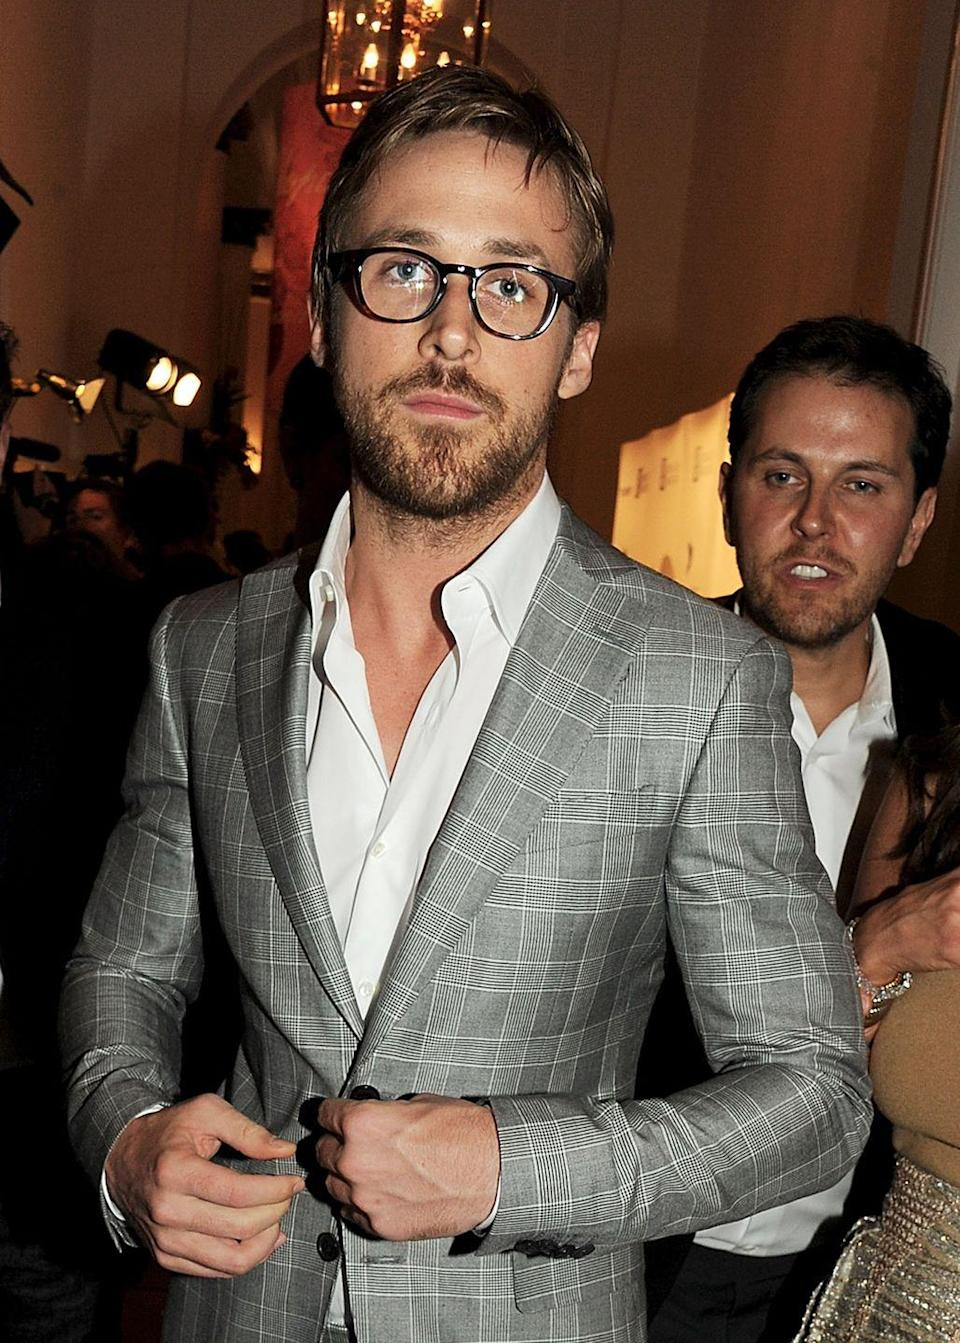 """<p>Even without a tie and a pair of glasses, <em><a href=""""https://www.menshealth.com/entertainment/a32630728/ryan-gosling-net-worth/"""" rel=""""nofollow noopener"""" target=""""_blank"""" data-ylk=""""slk:The Notebook"""" class=""""link rapid-noclick-resp"""">The Notebook </a></em><a href=""""https://www.menshealth.com/entertainment/a32630728/ryan-gosling-net-worth/"""" rel=""""nofollow noopener"""" target=""""_blank"""" data-ylk=""""slk:star"""" class=""""link rapid-noclick-resp"""">star</a> sure knows how to make people swoon with his slightly disheveled look. </p>"""